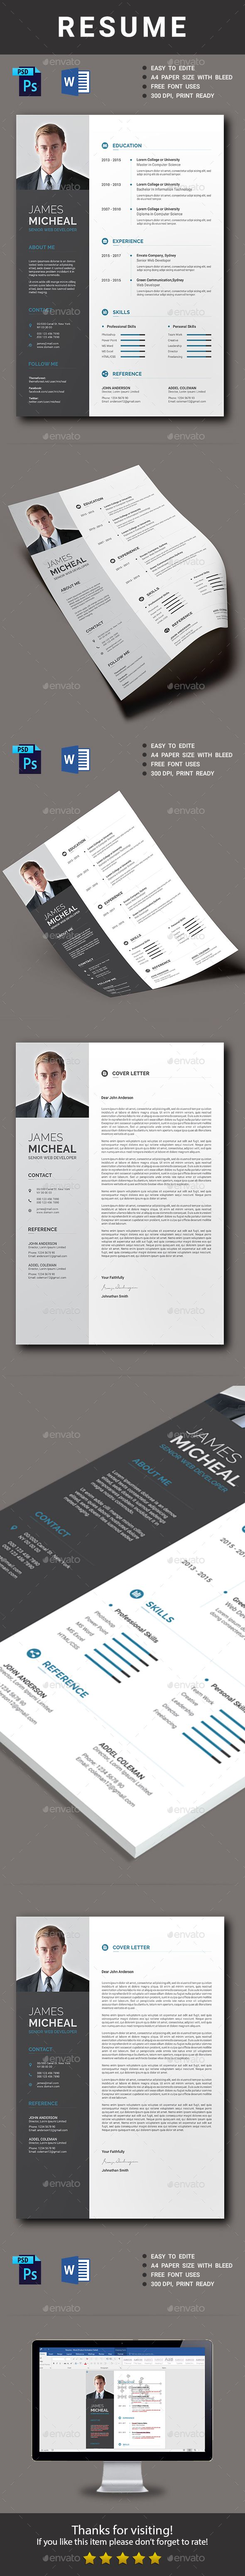 excellent resume formats%0A how to start cover letters